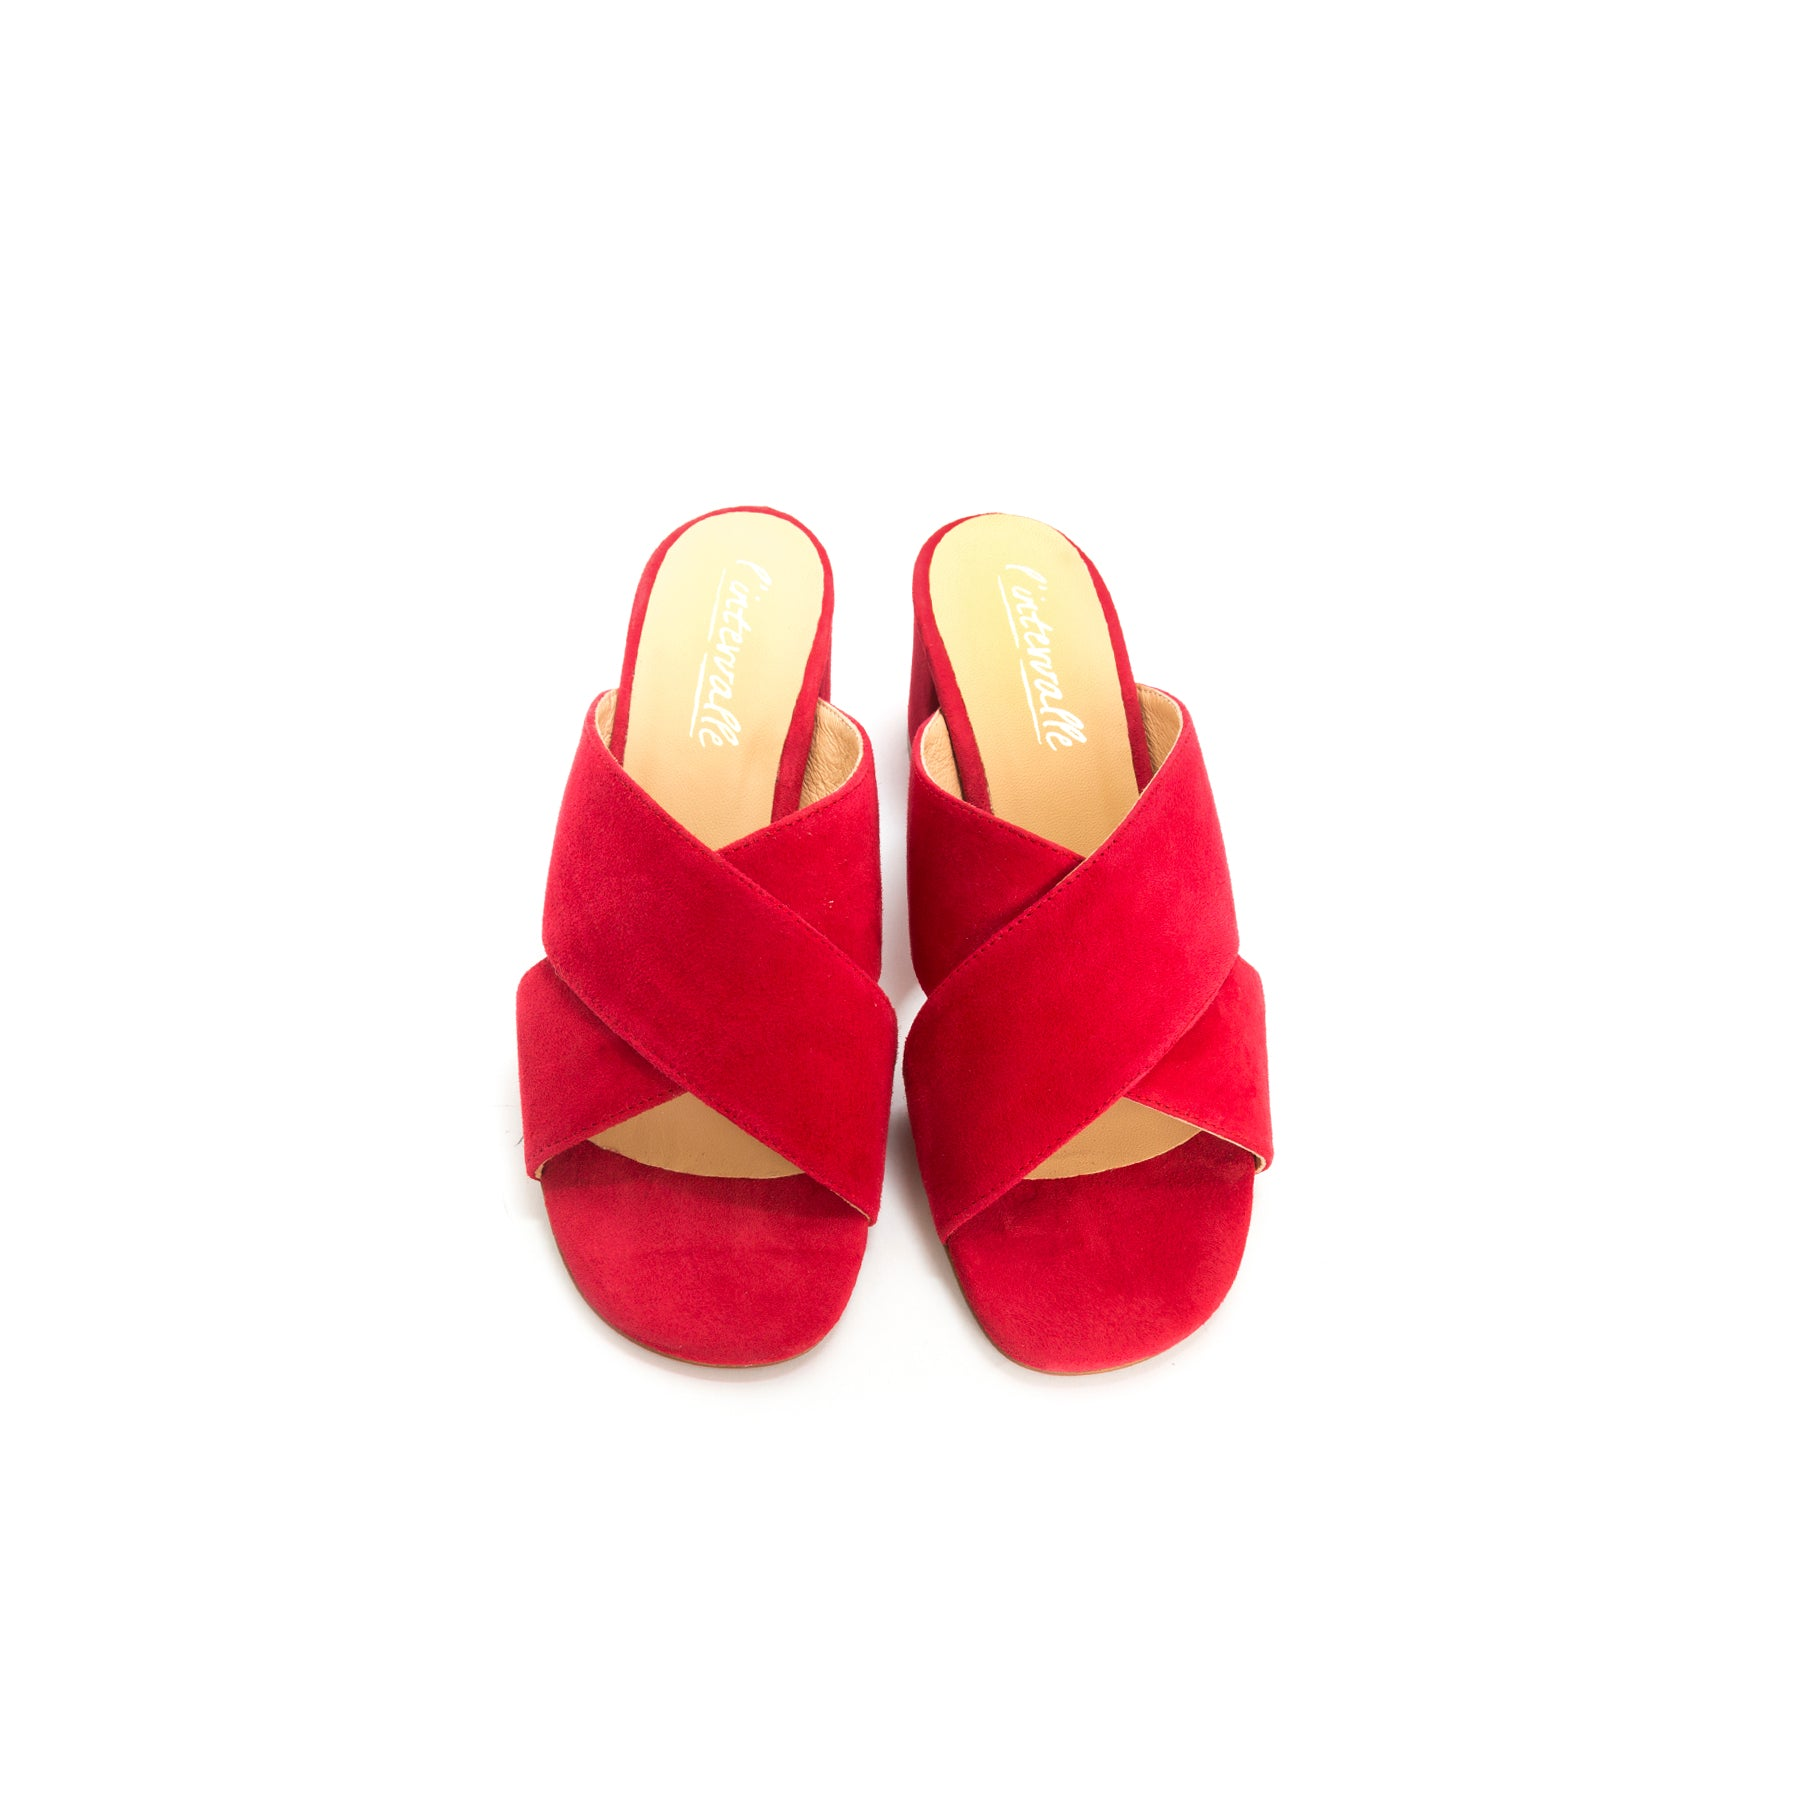 Illy Red Suede